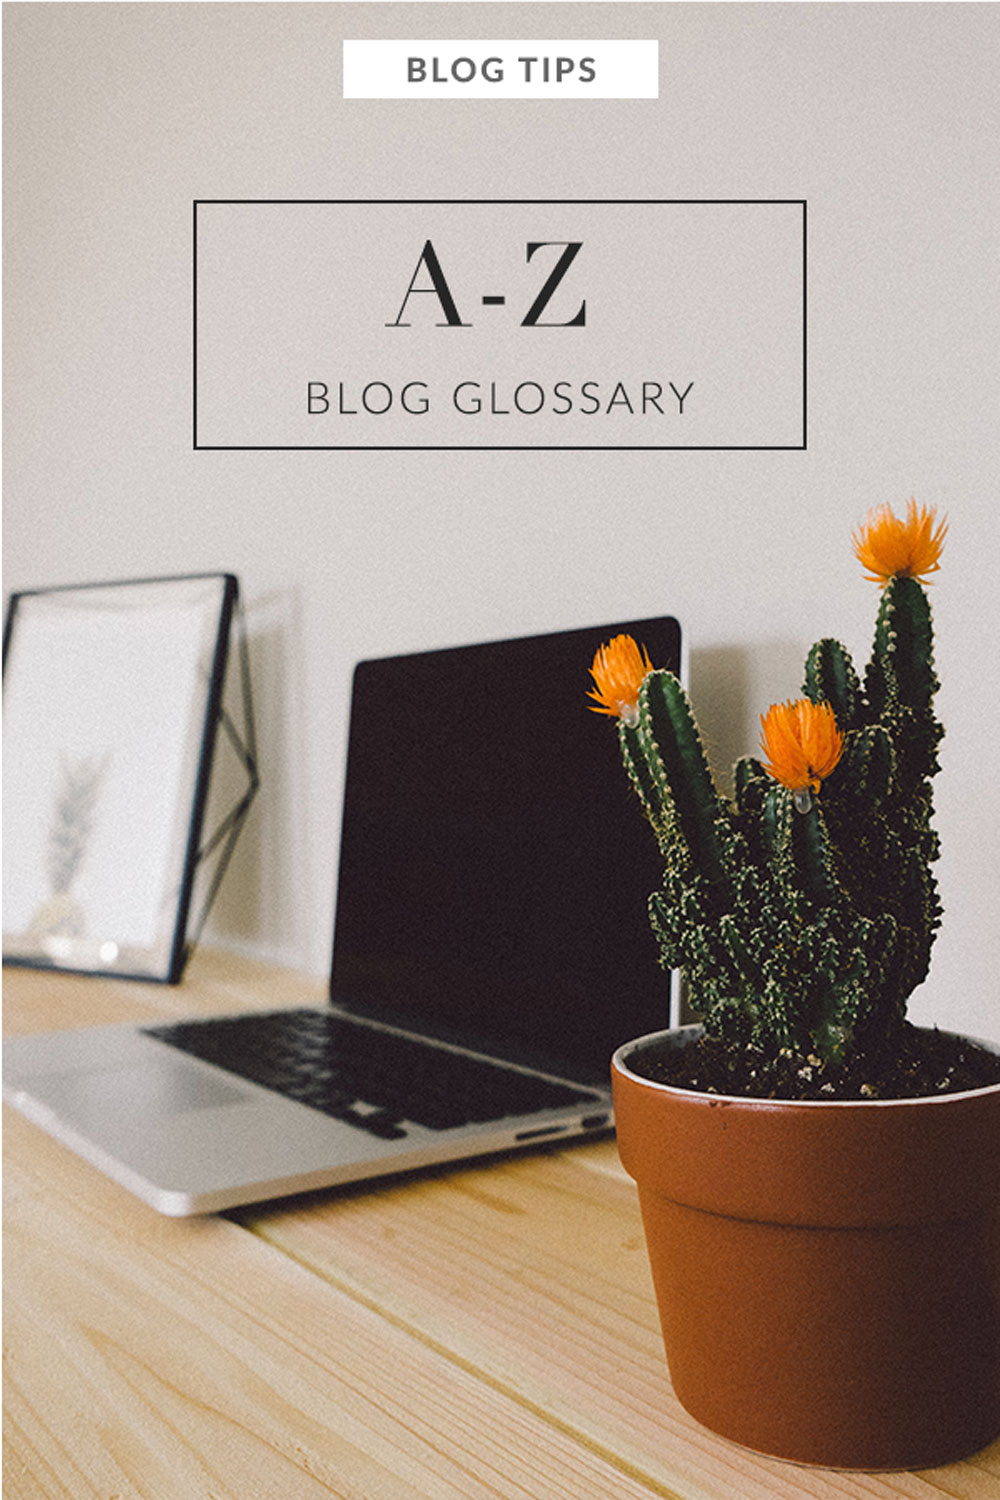 Blogging Glossary from A-Z. Get up to speed on terminology used by bloggers and influencers.